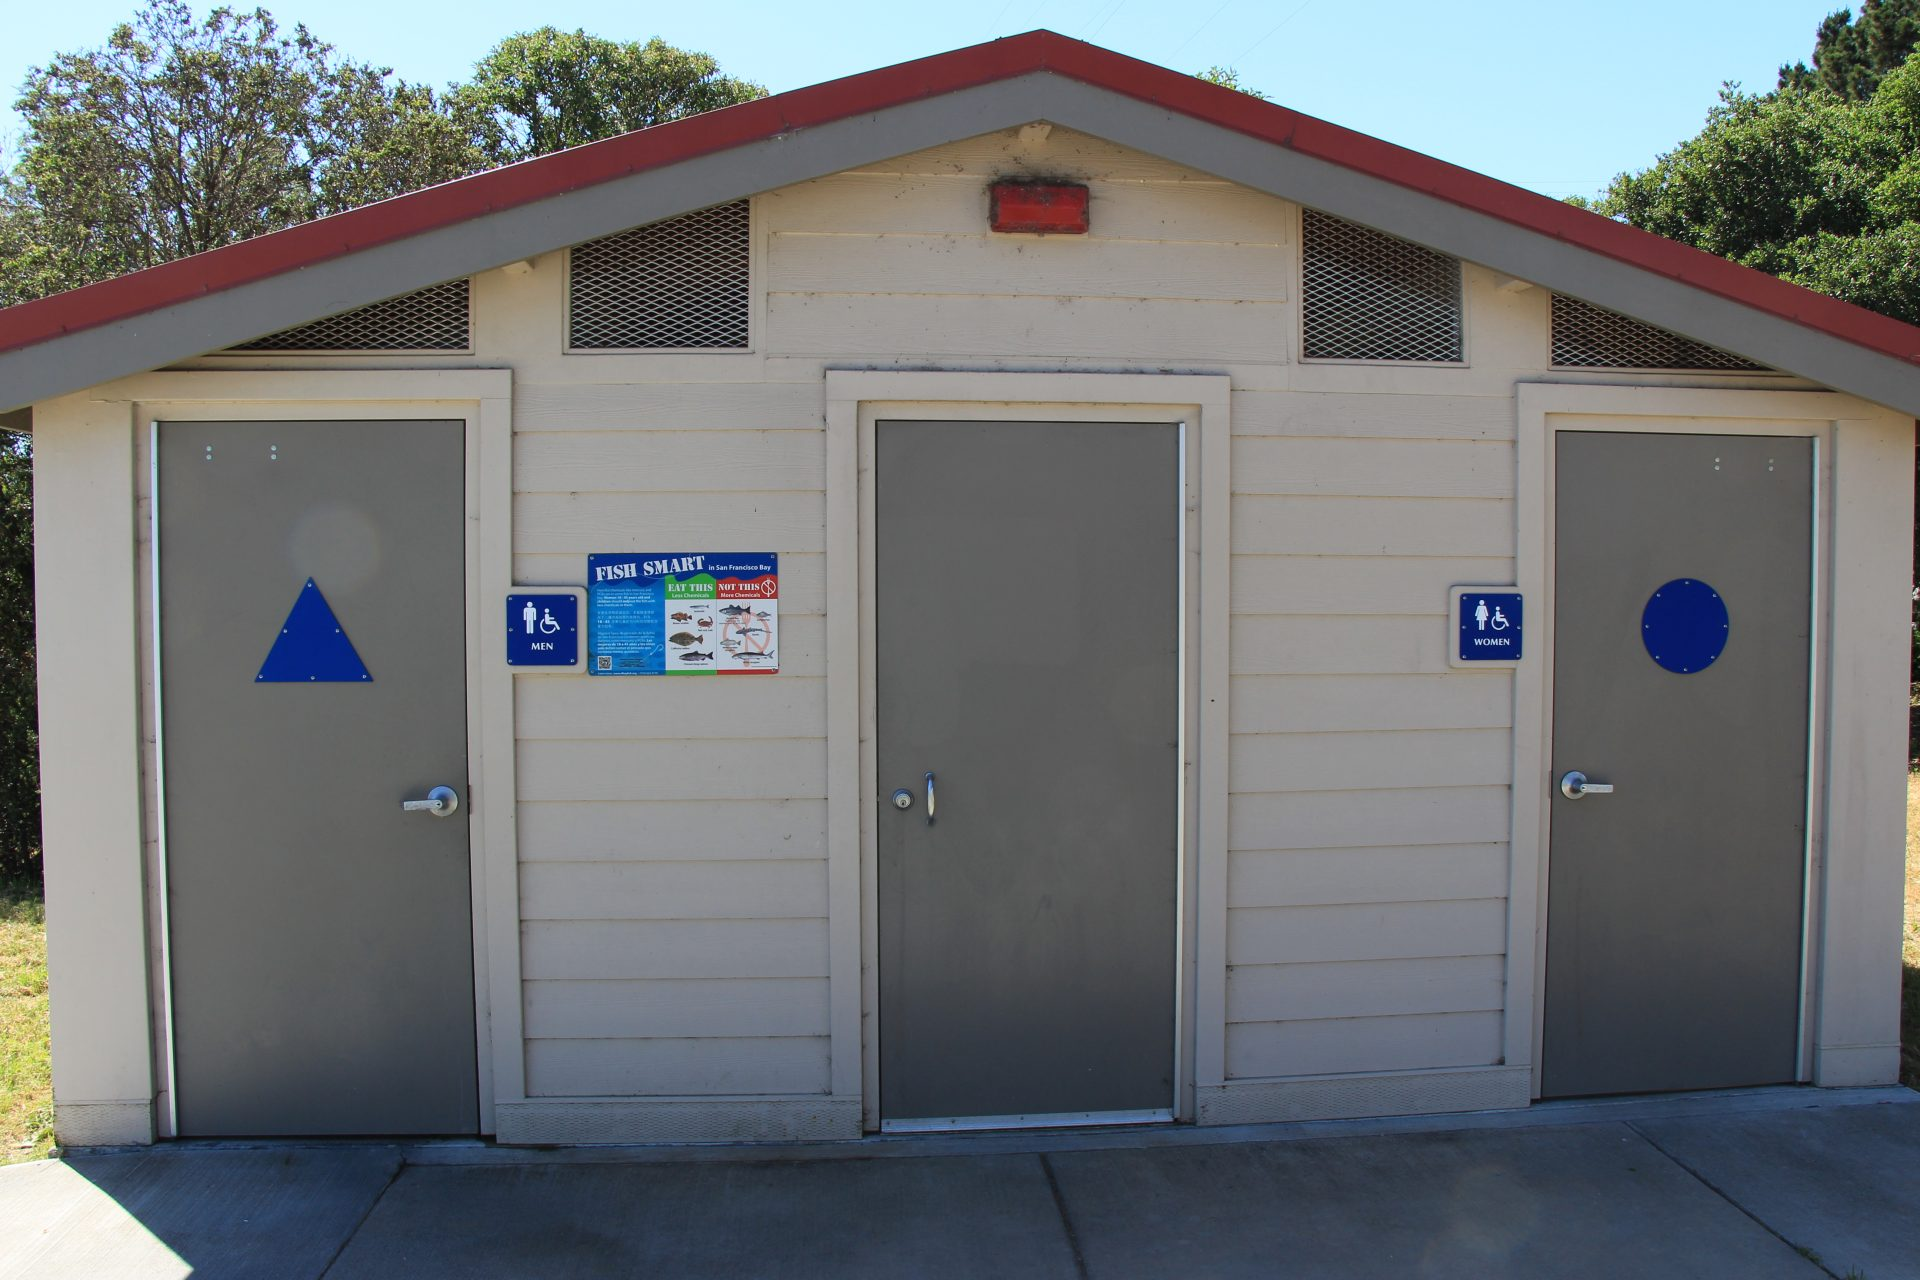 Building with two bathrooms